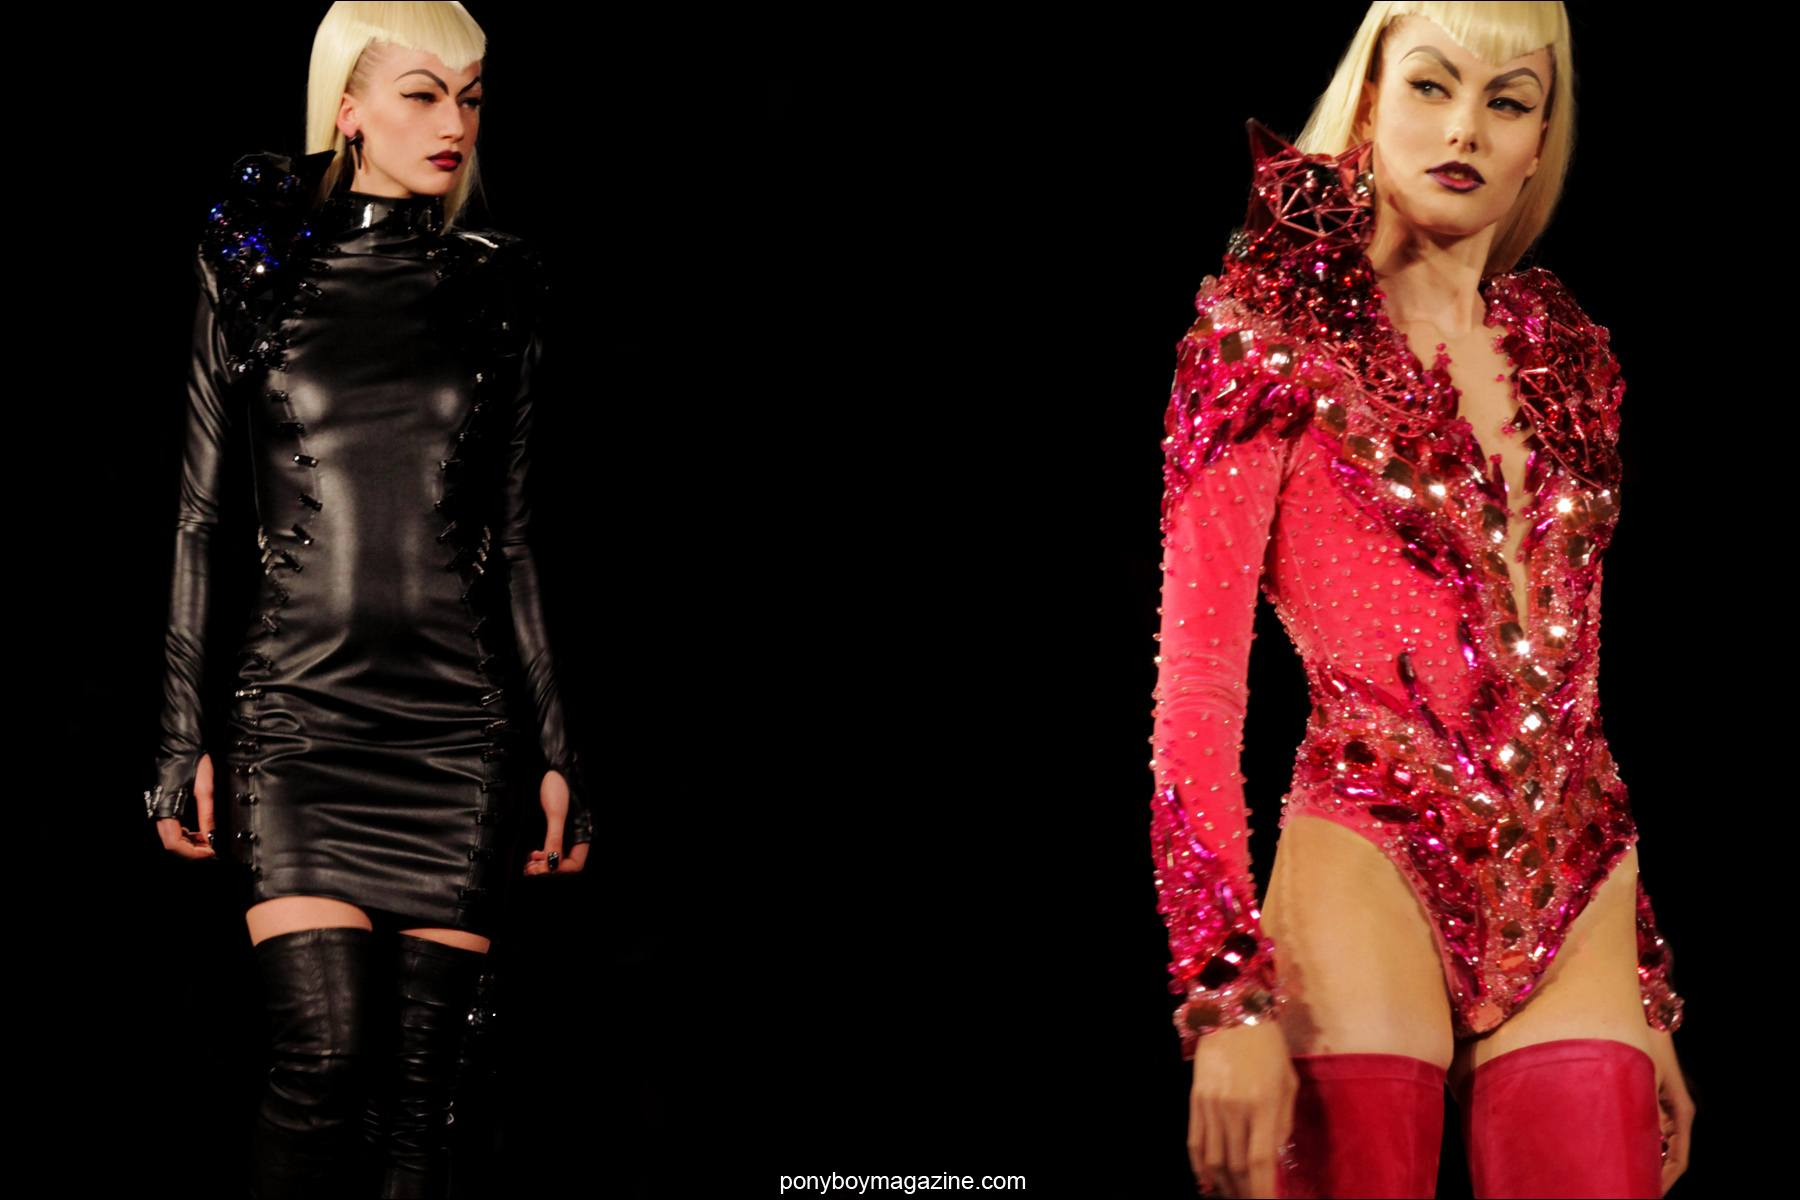 The latest A/W 2014 creations by The Blonds, photographed by Alexander Thompson for Ponyboy Magazine.